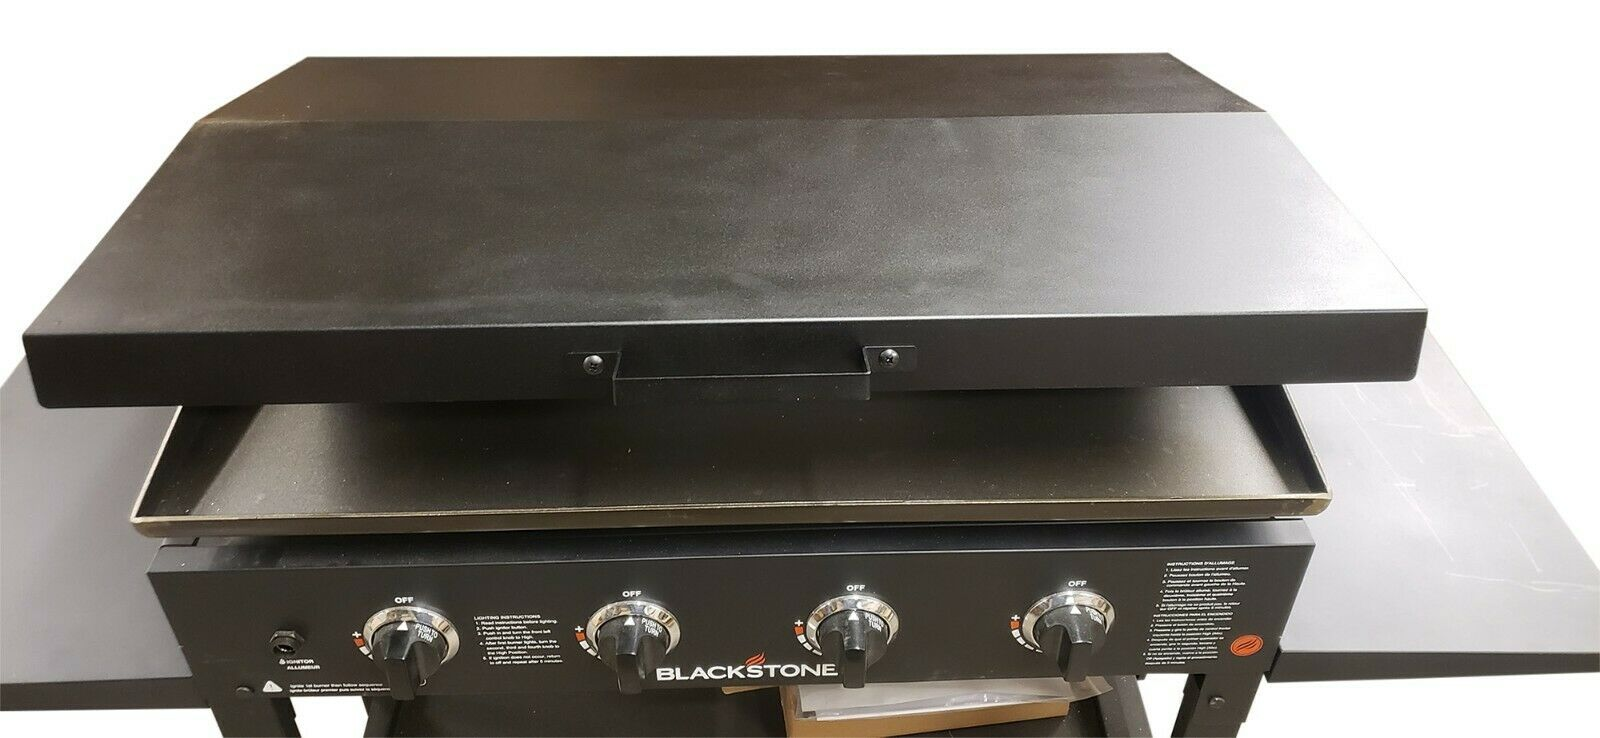 Hinged Cover for 36 inch Blackstone Griddle with Rear Grease Collection - Black